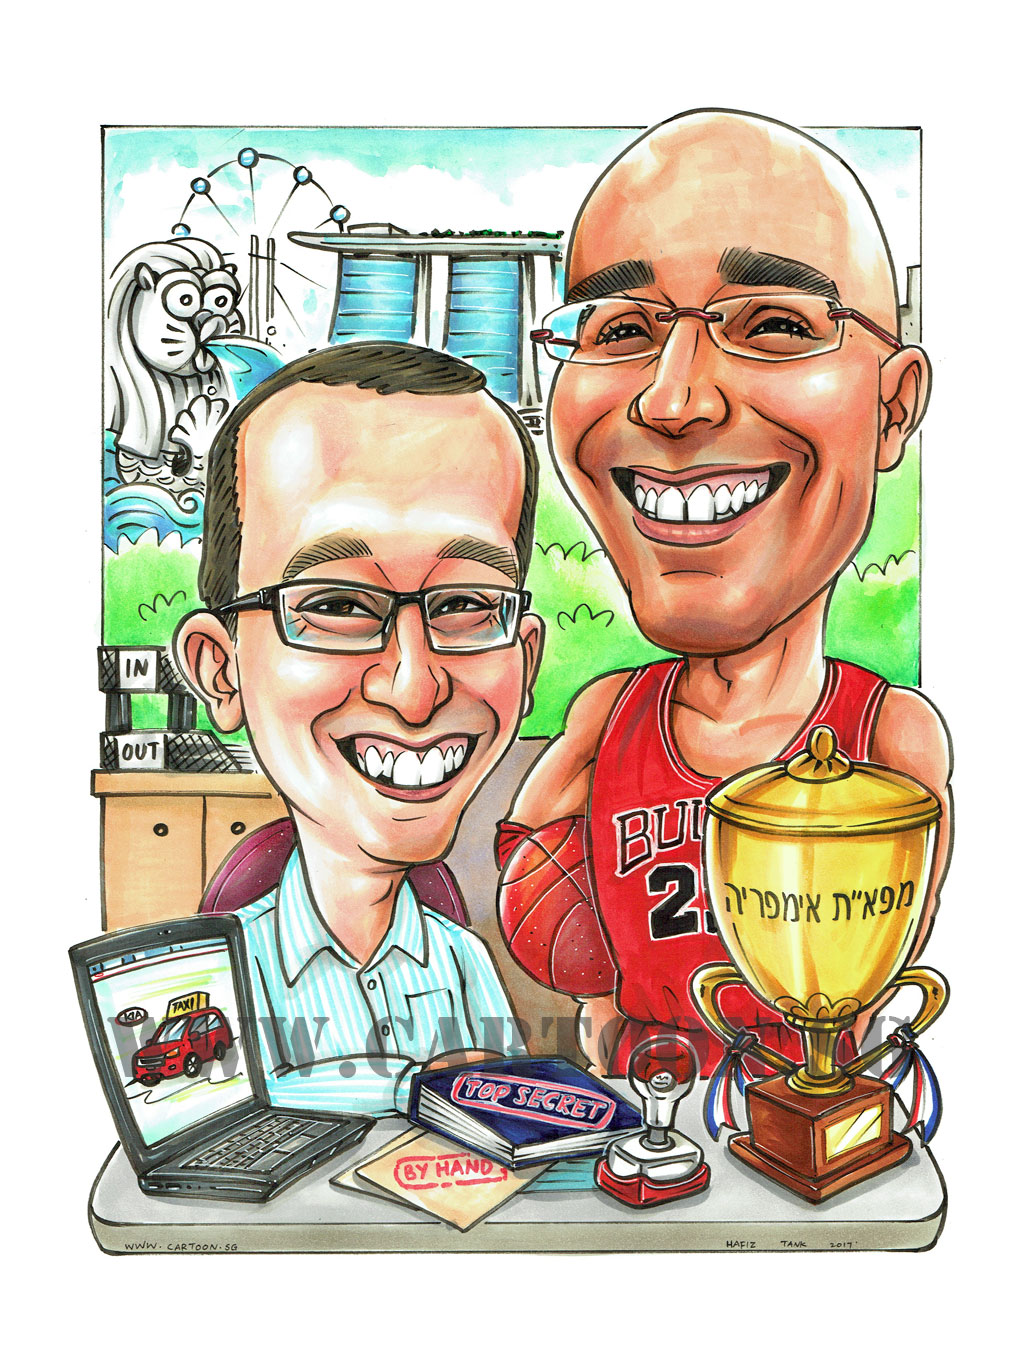 2017-06-14-Caricature-Singapore-farewell-gift-colleague-trophy-top-secret-by-hand-laptop-kia-car-taxi-files-merlion.jpg